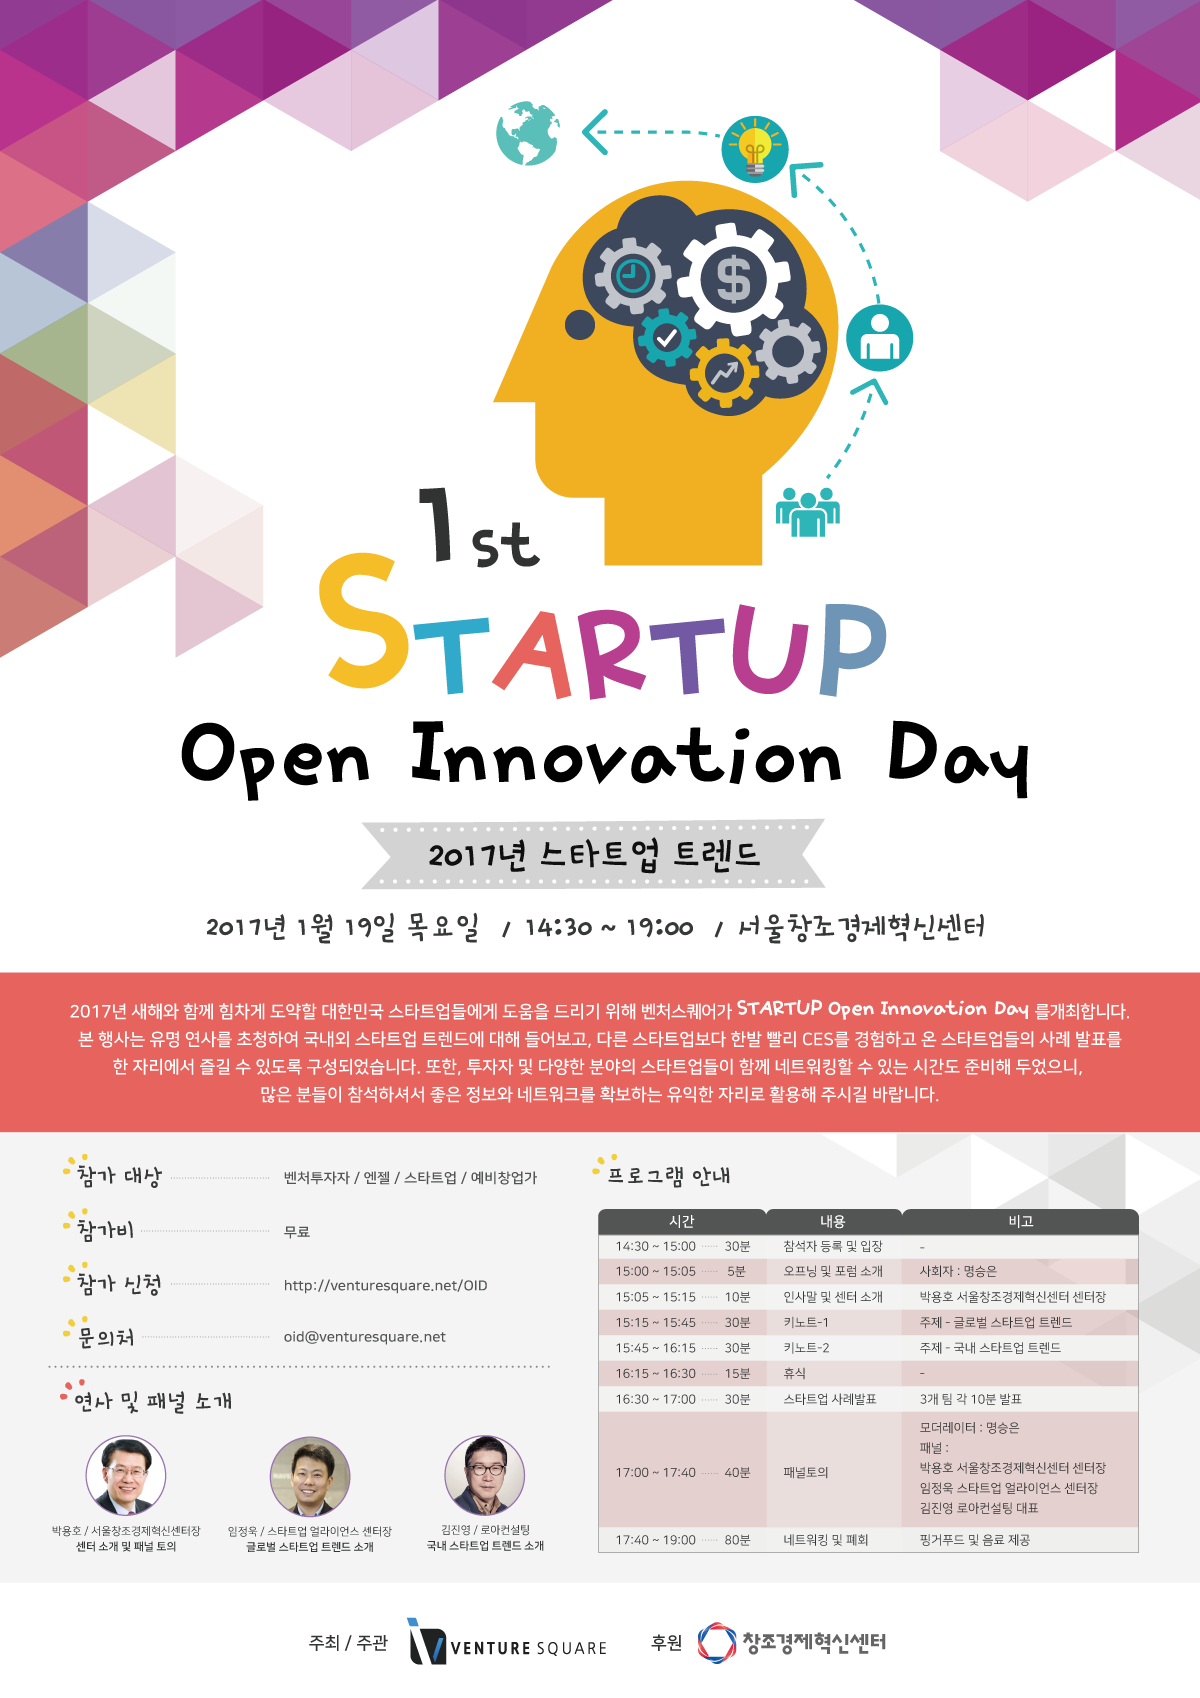 1st_open_innovation_day_poster